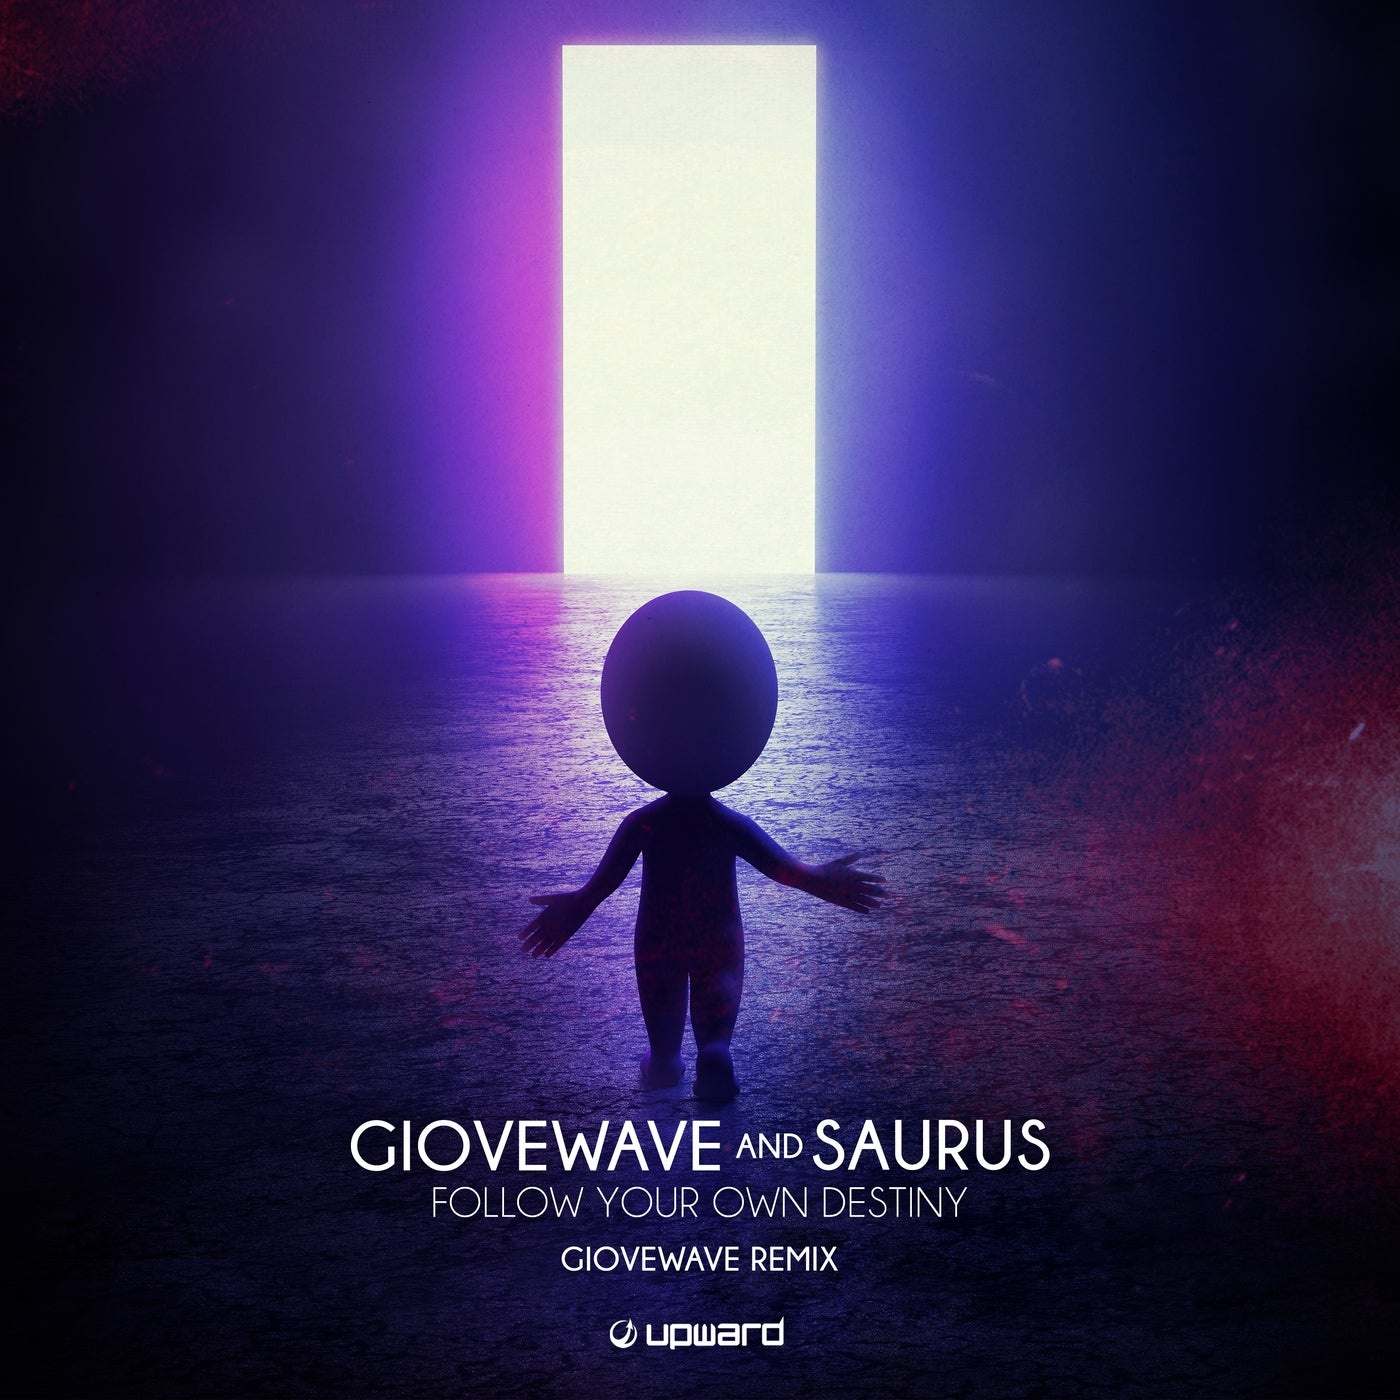 Cover - Giovewave, Saurus - Follow Your Own Destiny (Giovewave Remix)